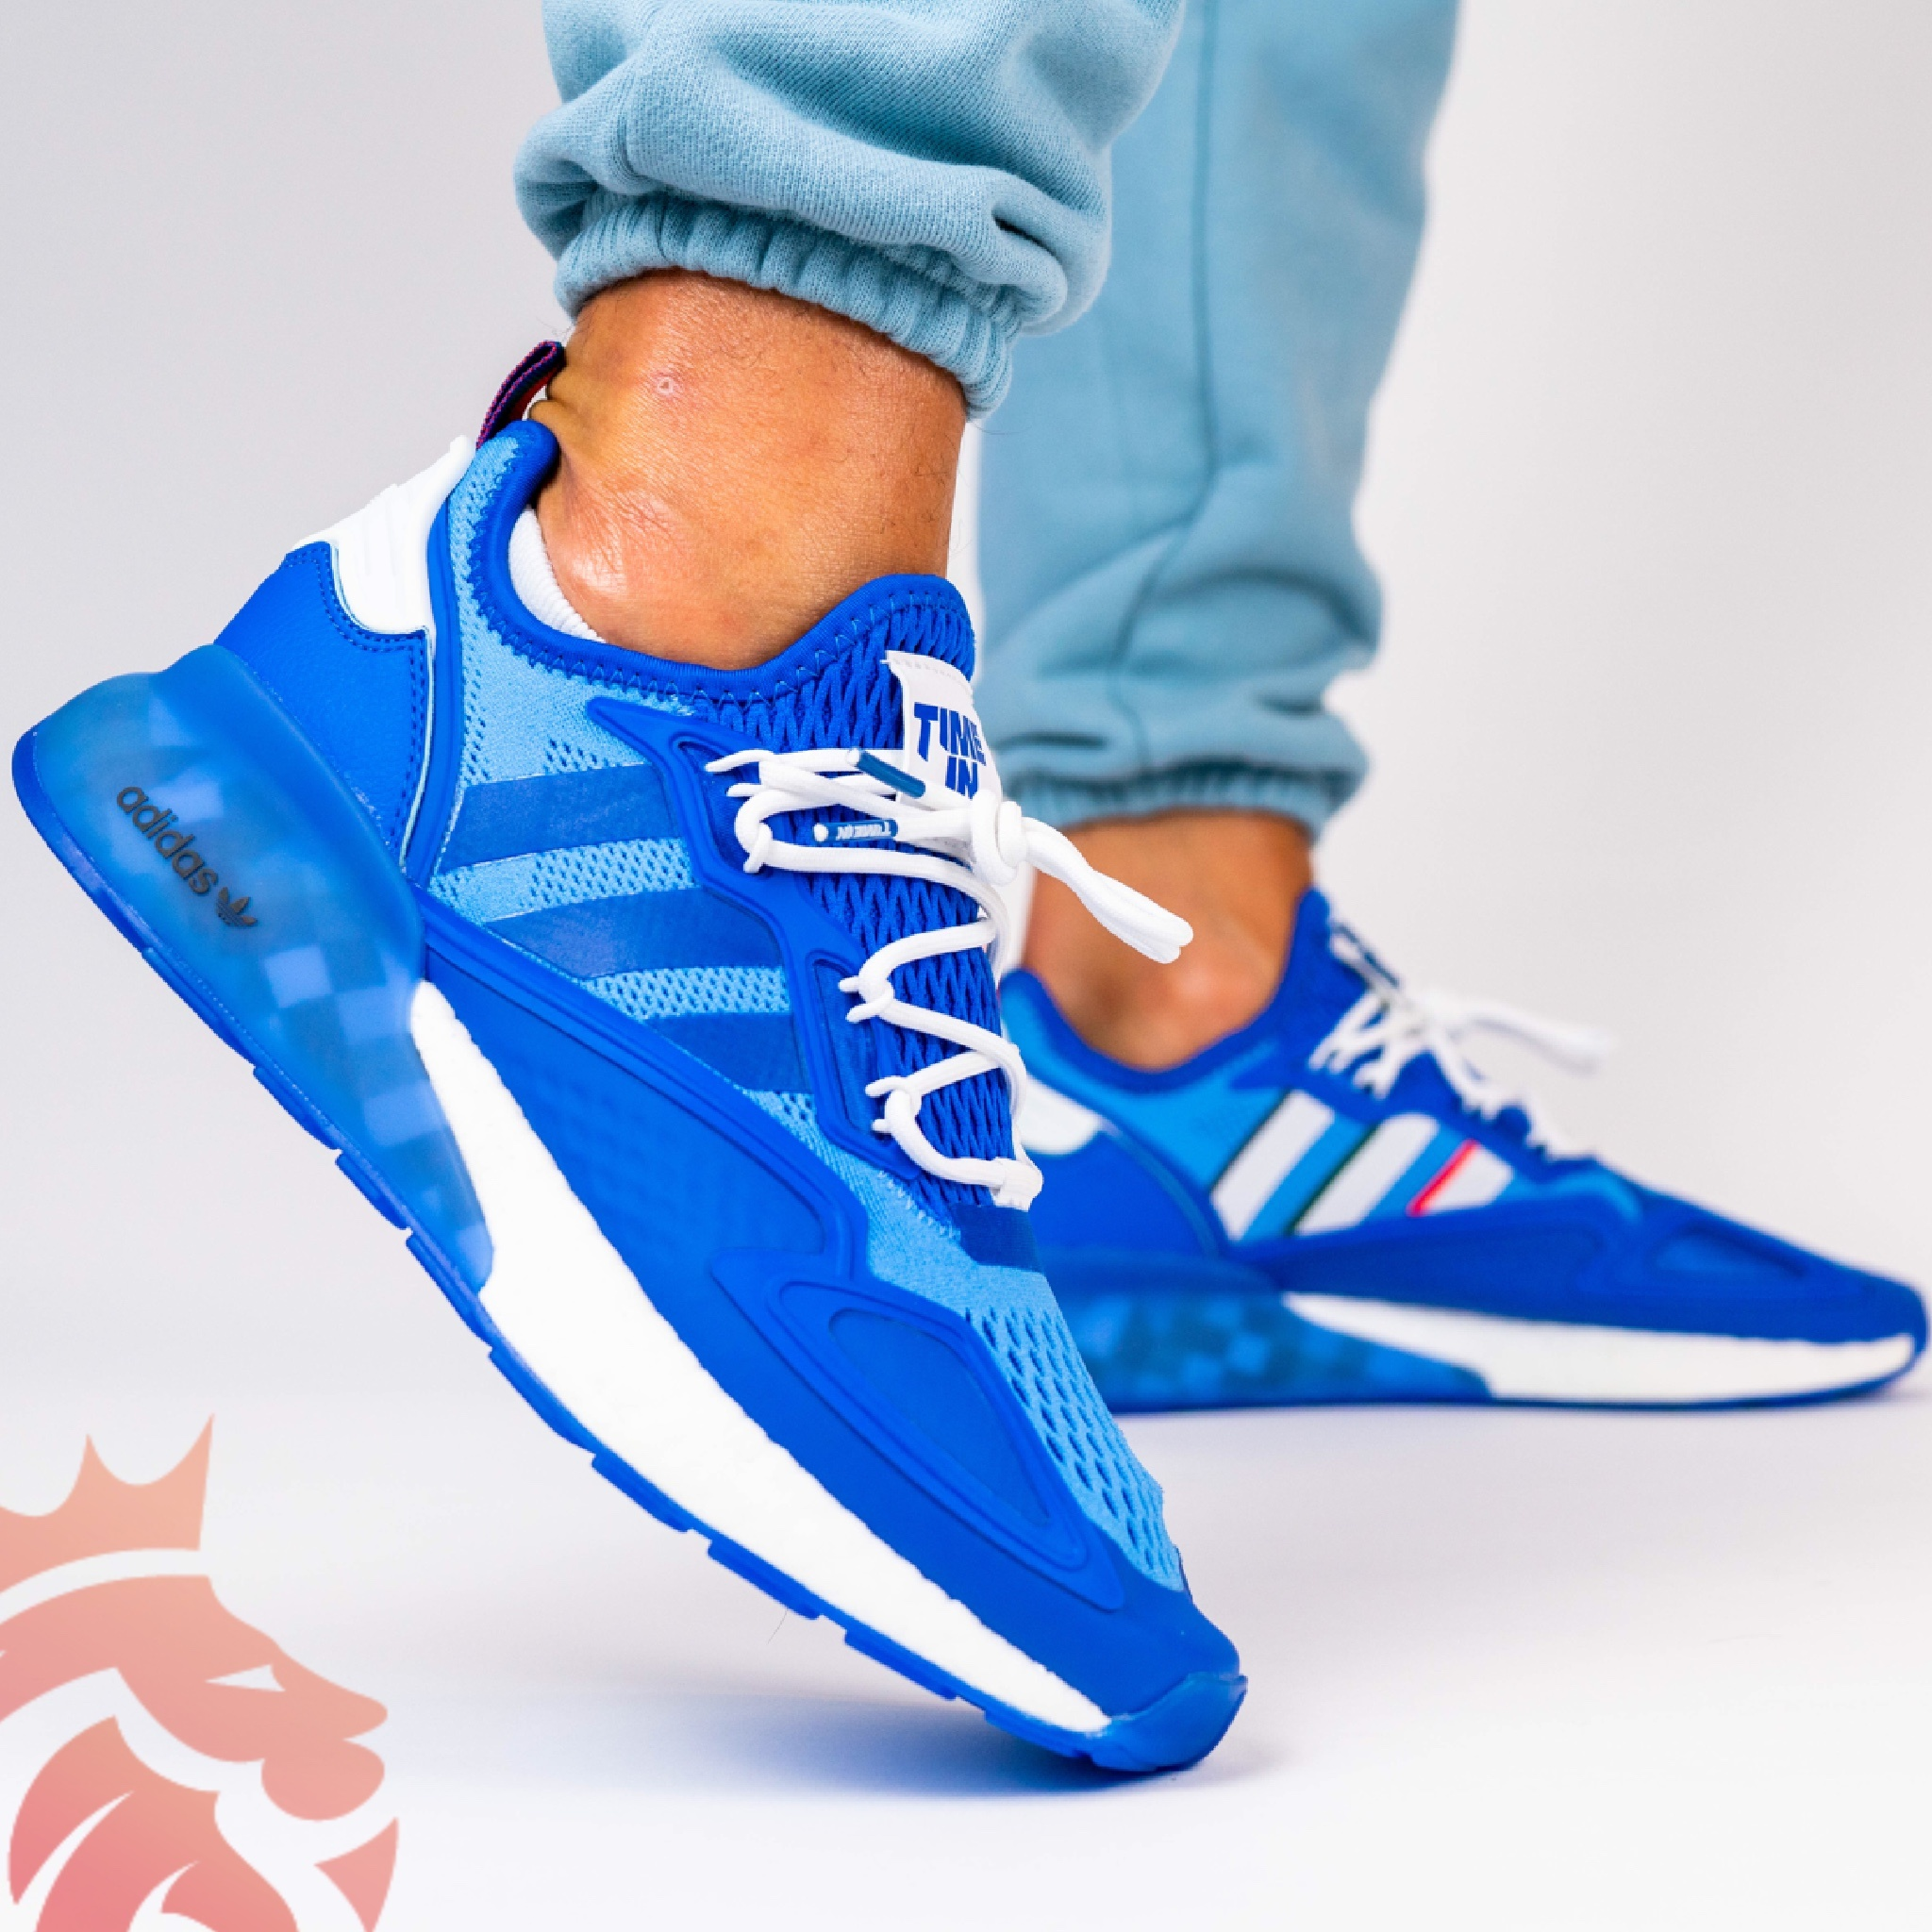 Yankeekicks On Feet Ninja Time x adidas ZX 2K Boost Blue FZ1883 Hyper Blue, Baby Blue, White, Navy